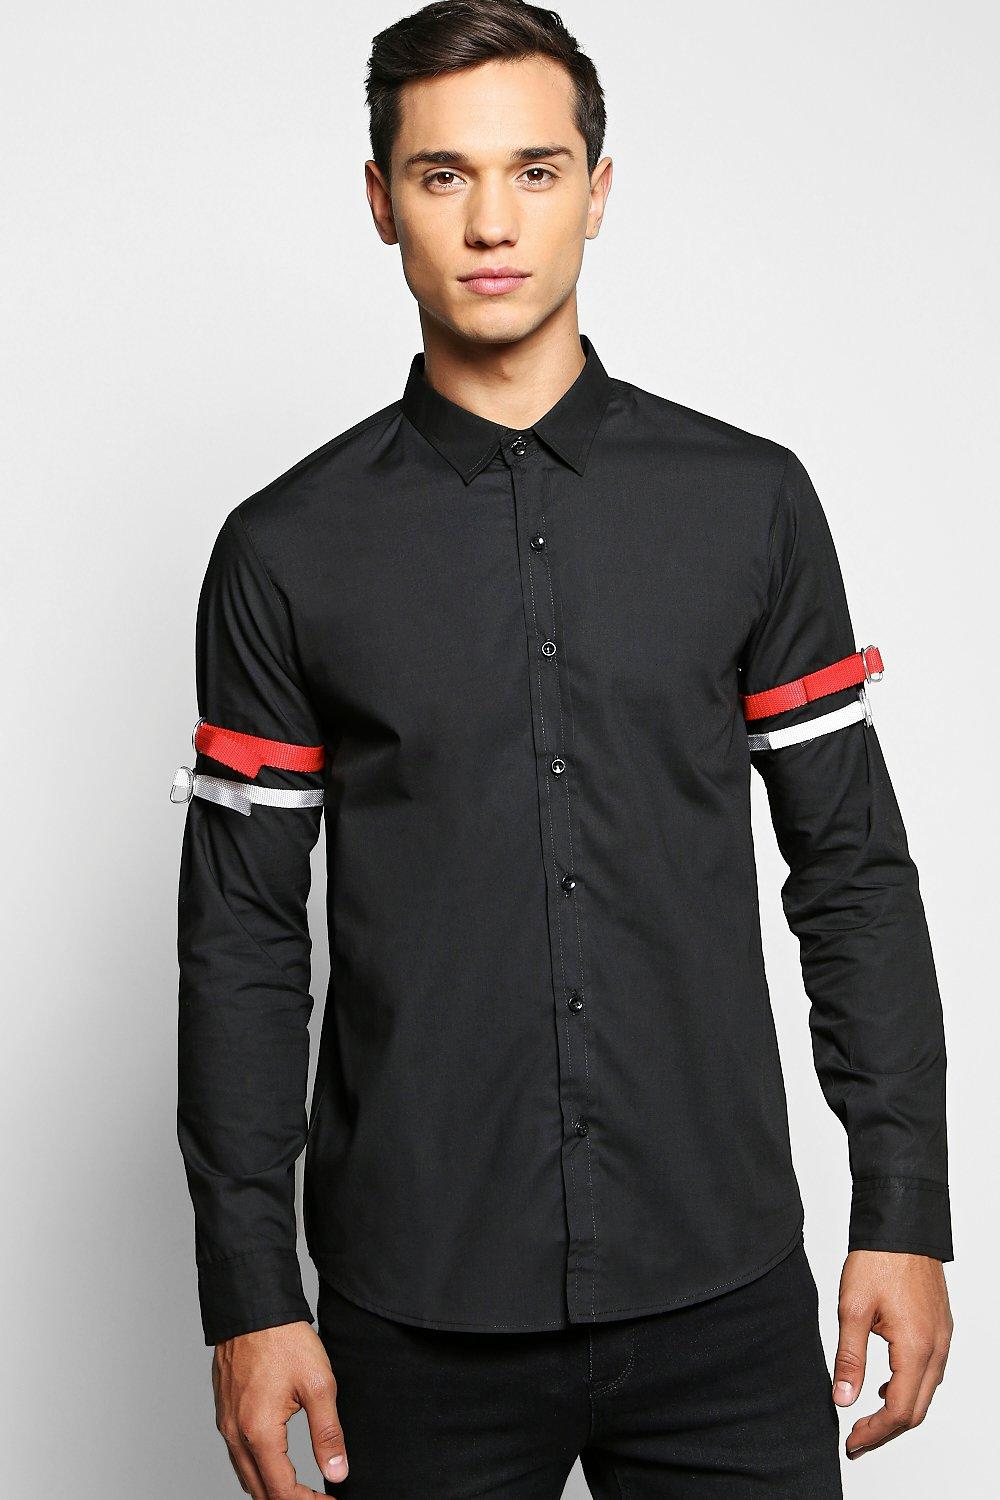 Strap Detail Long Sleeve Shirt